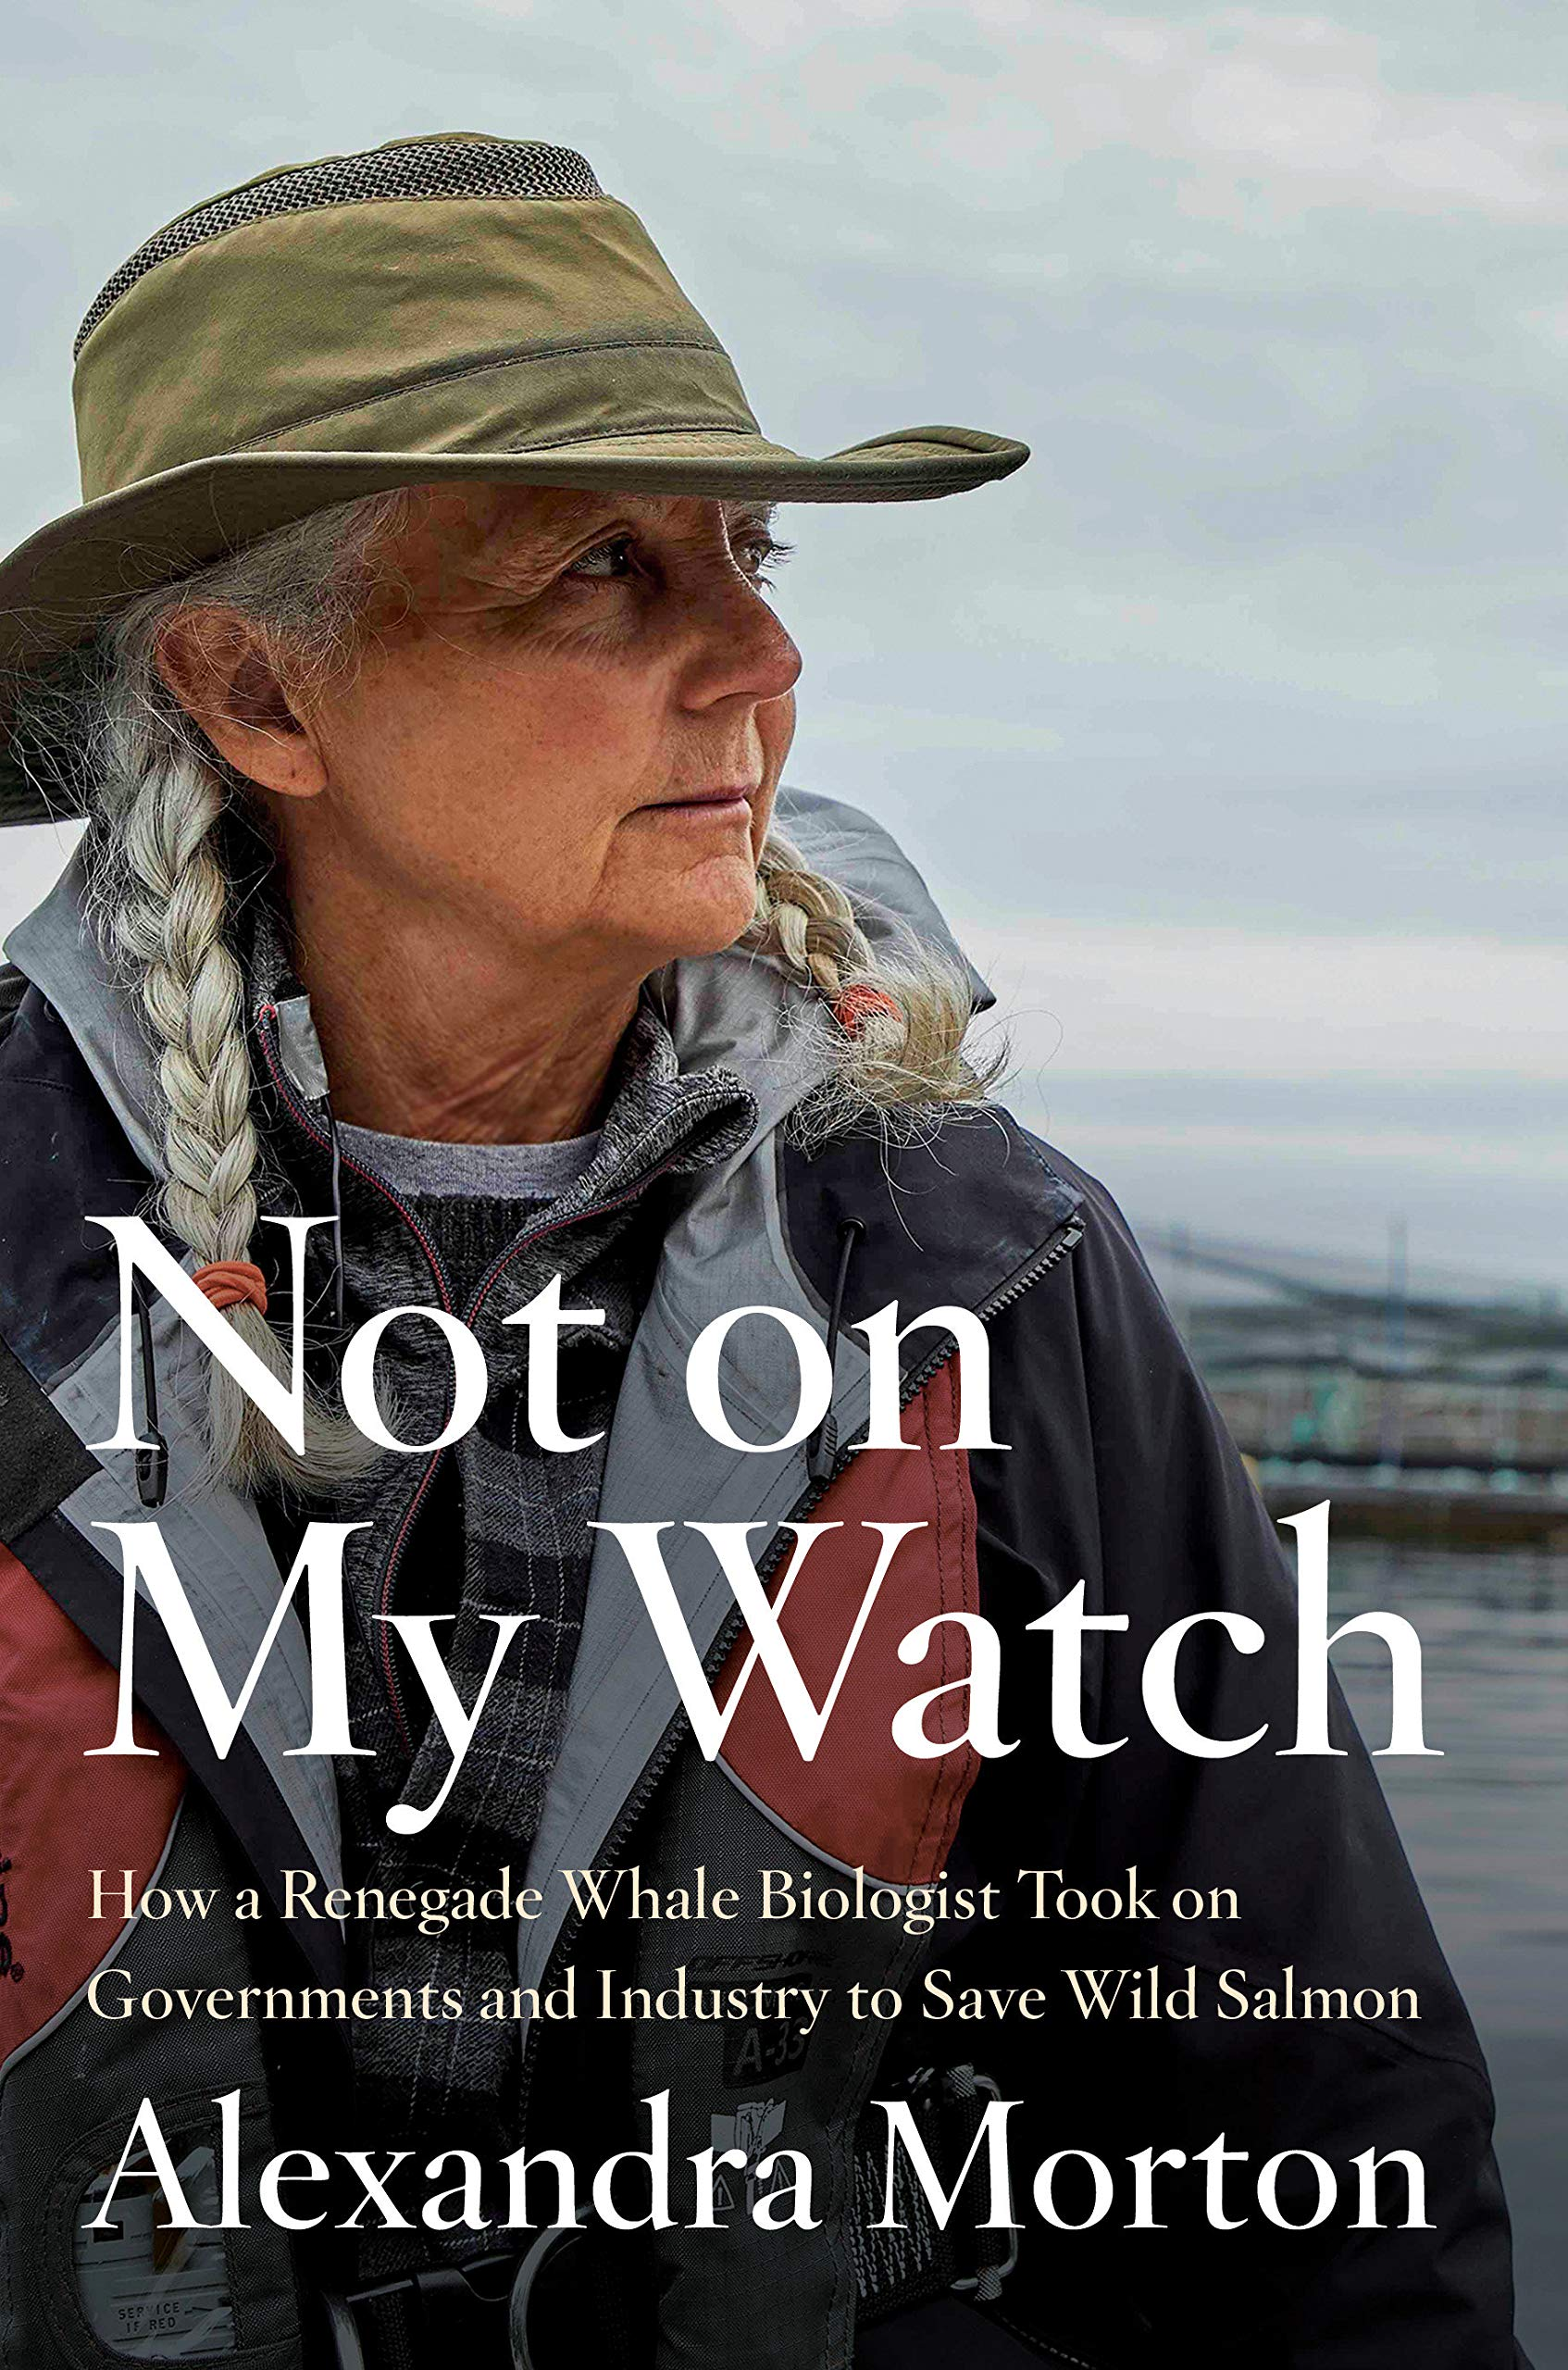 cover for alexan dra morton's book not on my watch